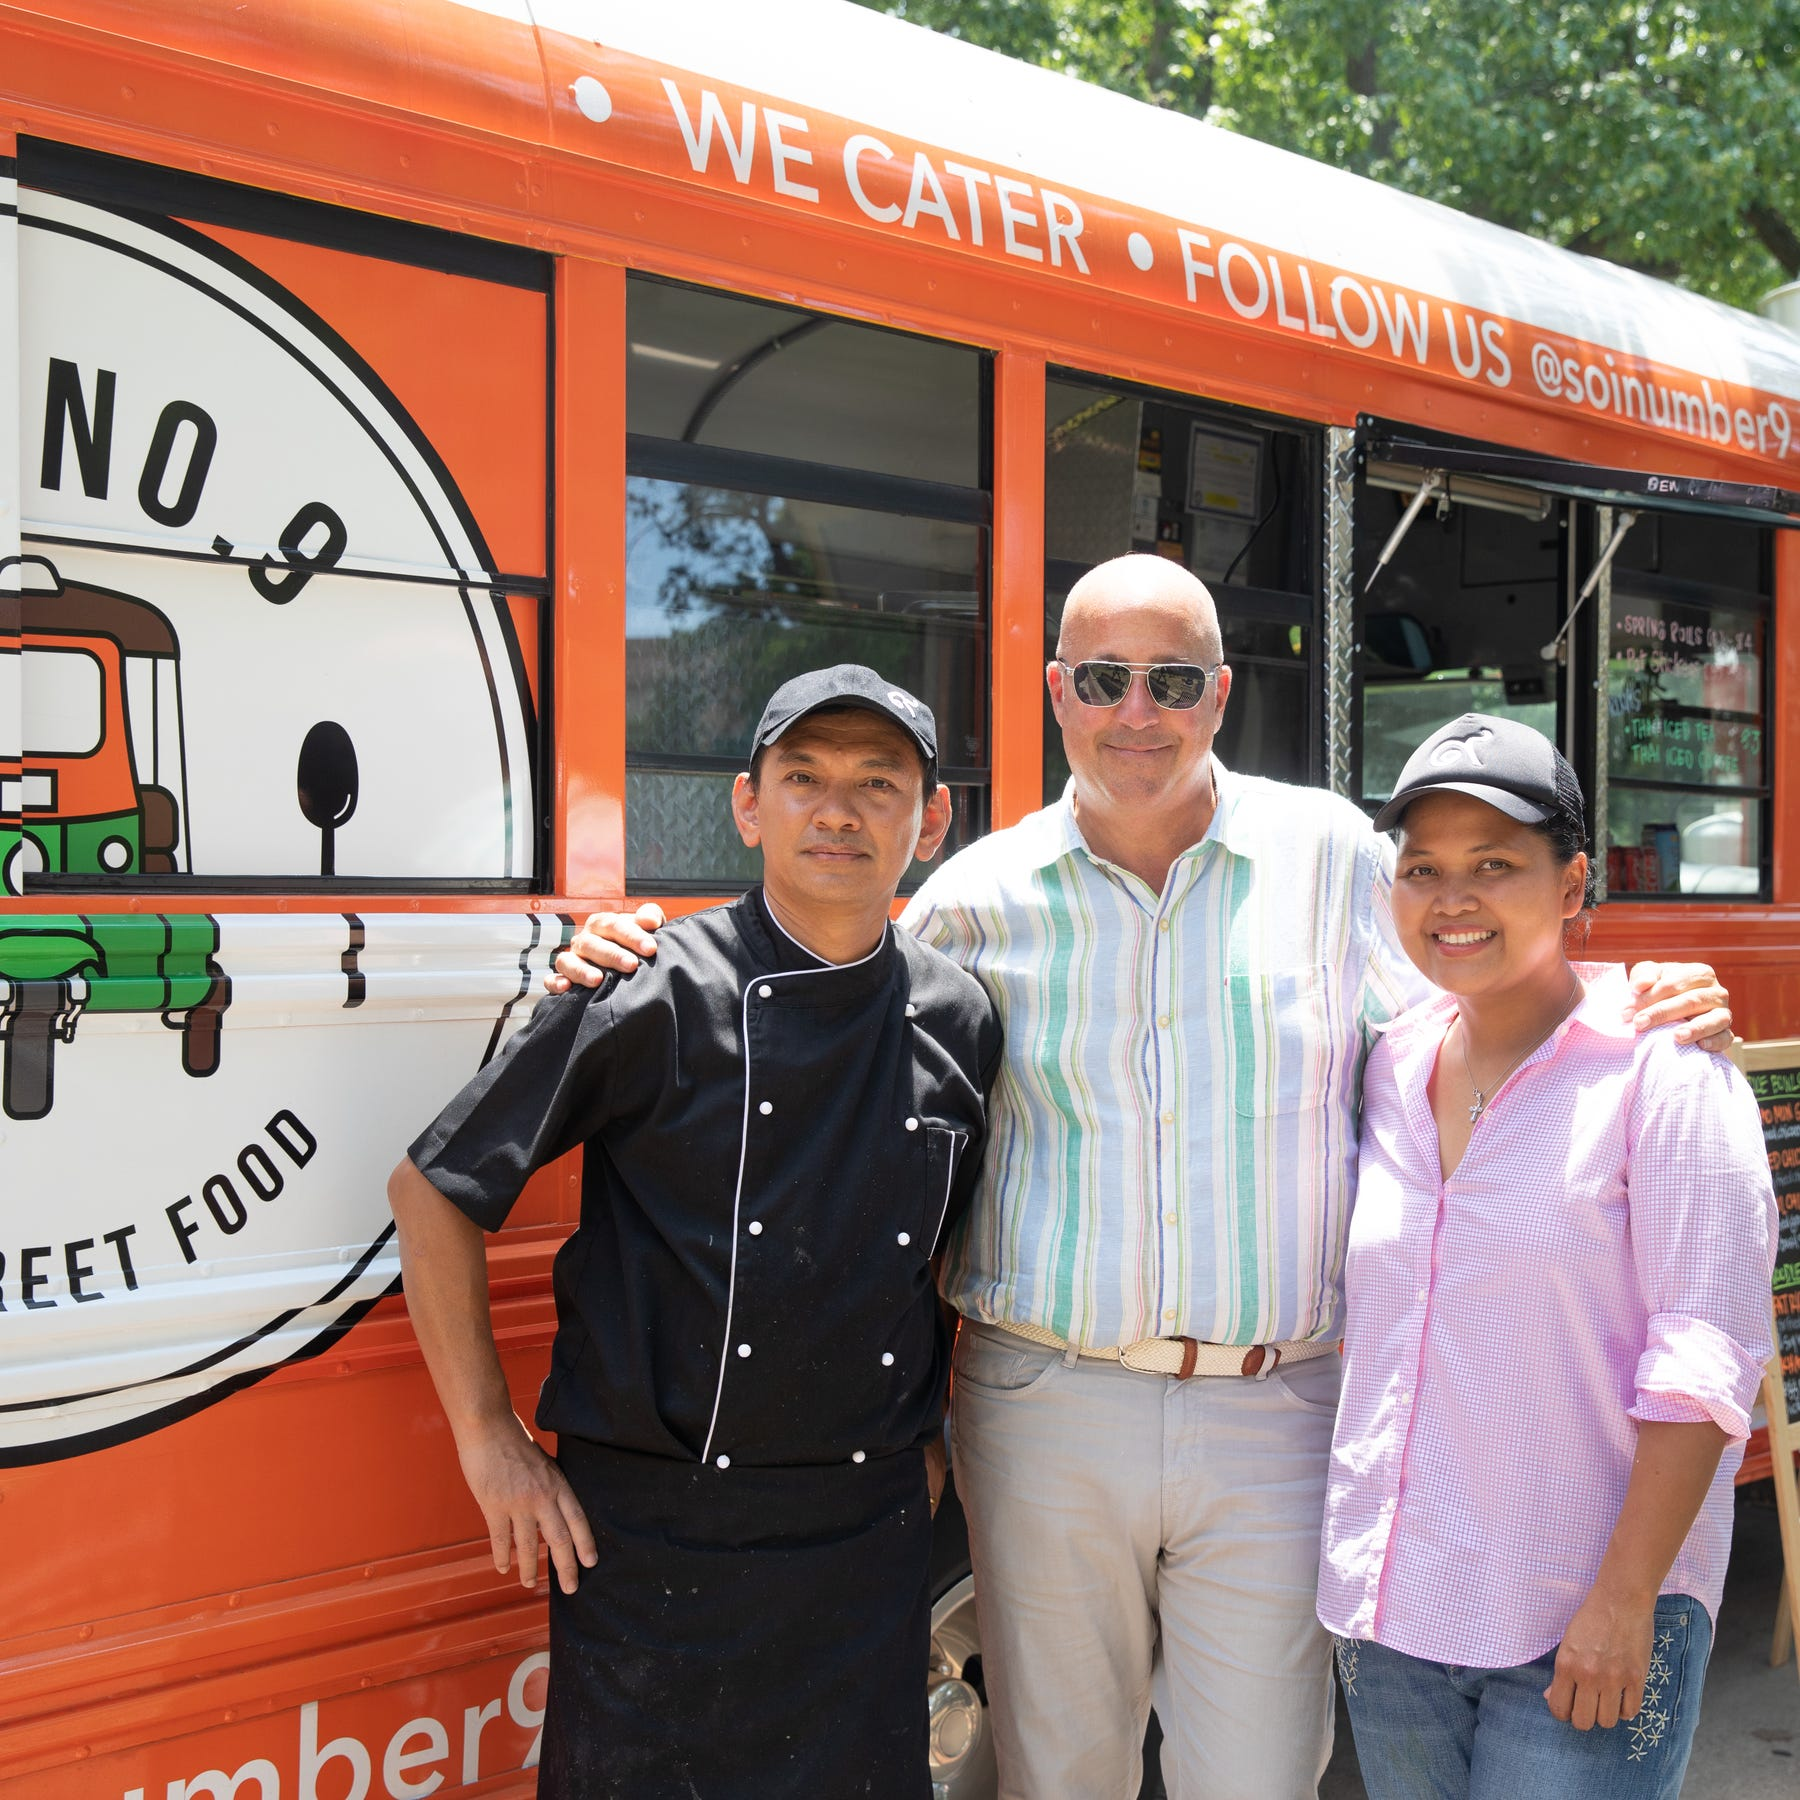 Soi No. 9 wins the big tip on Andrew Zimmern's new Food Network Show